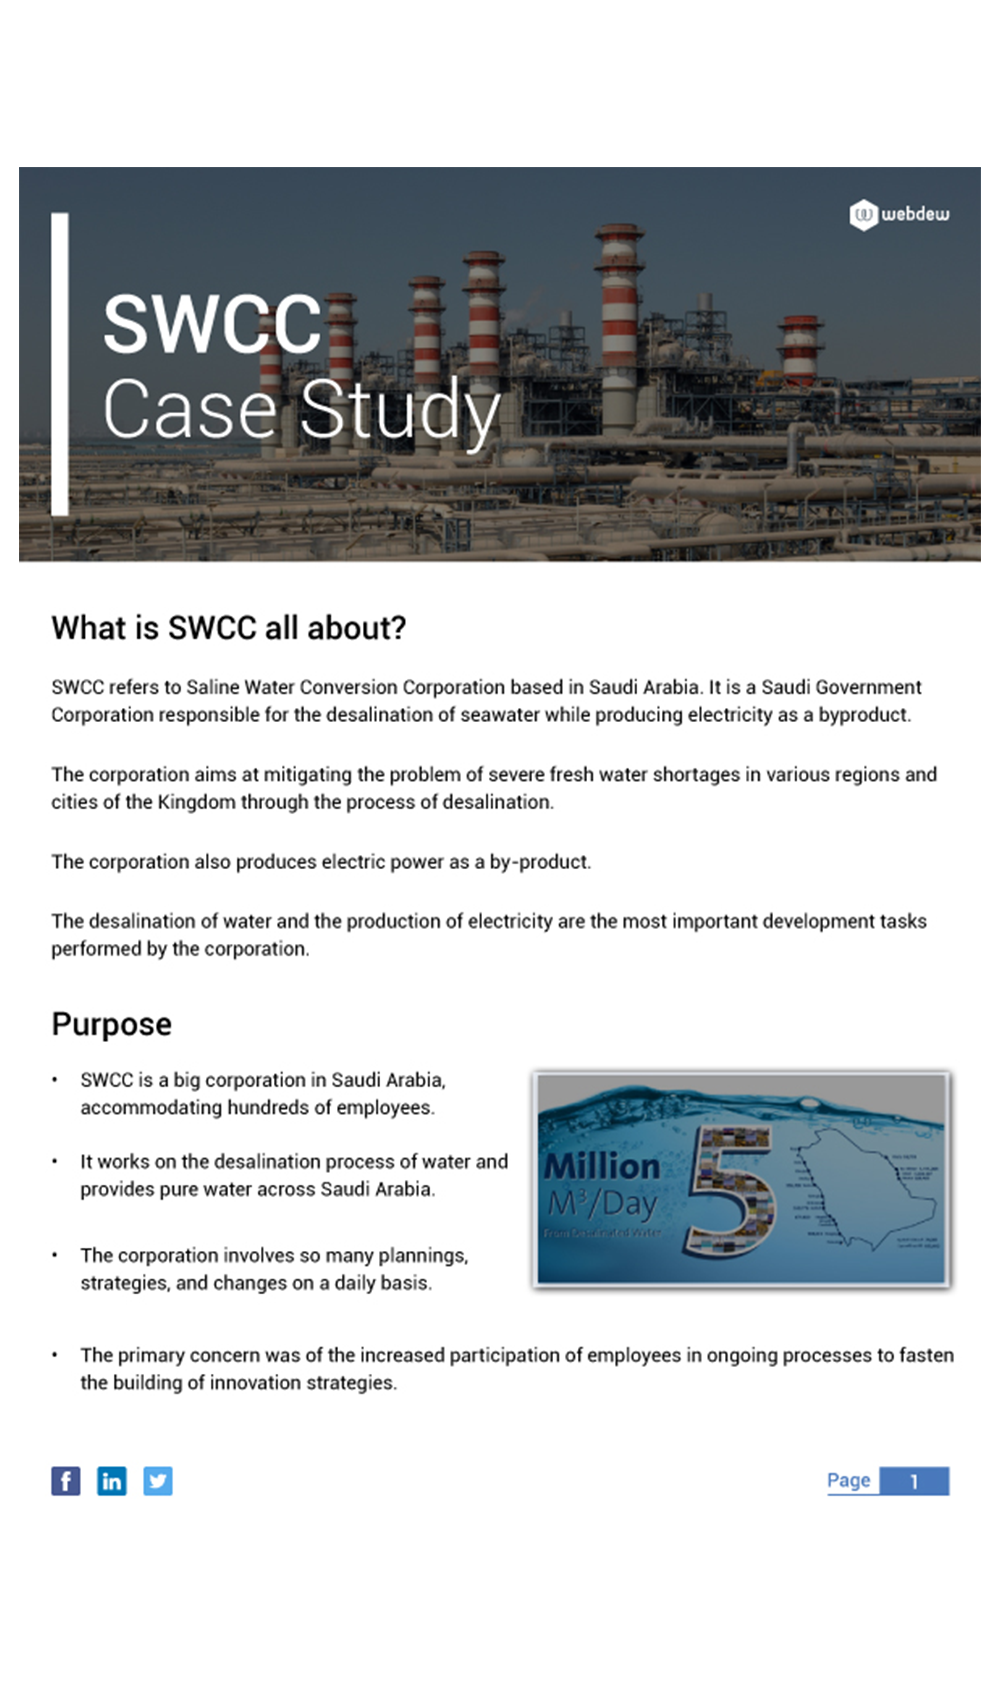 A Case Study of SWCC